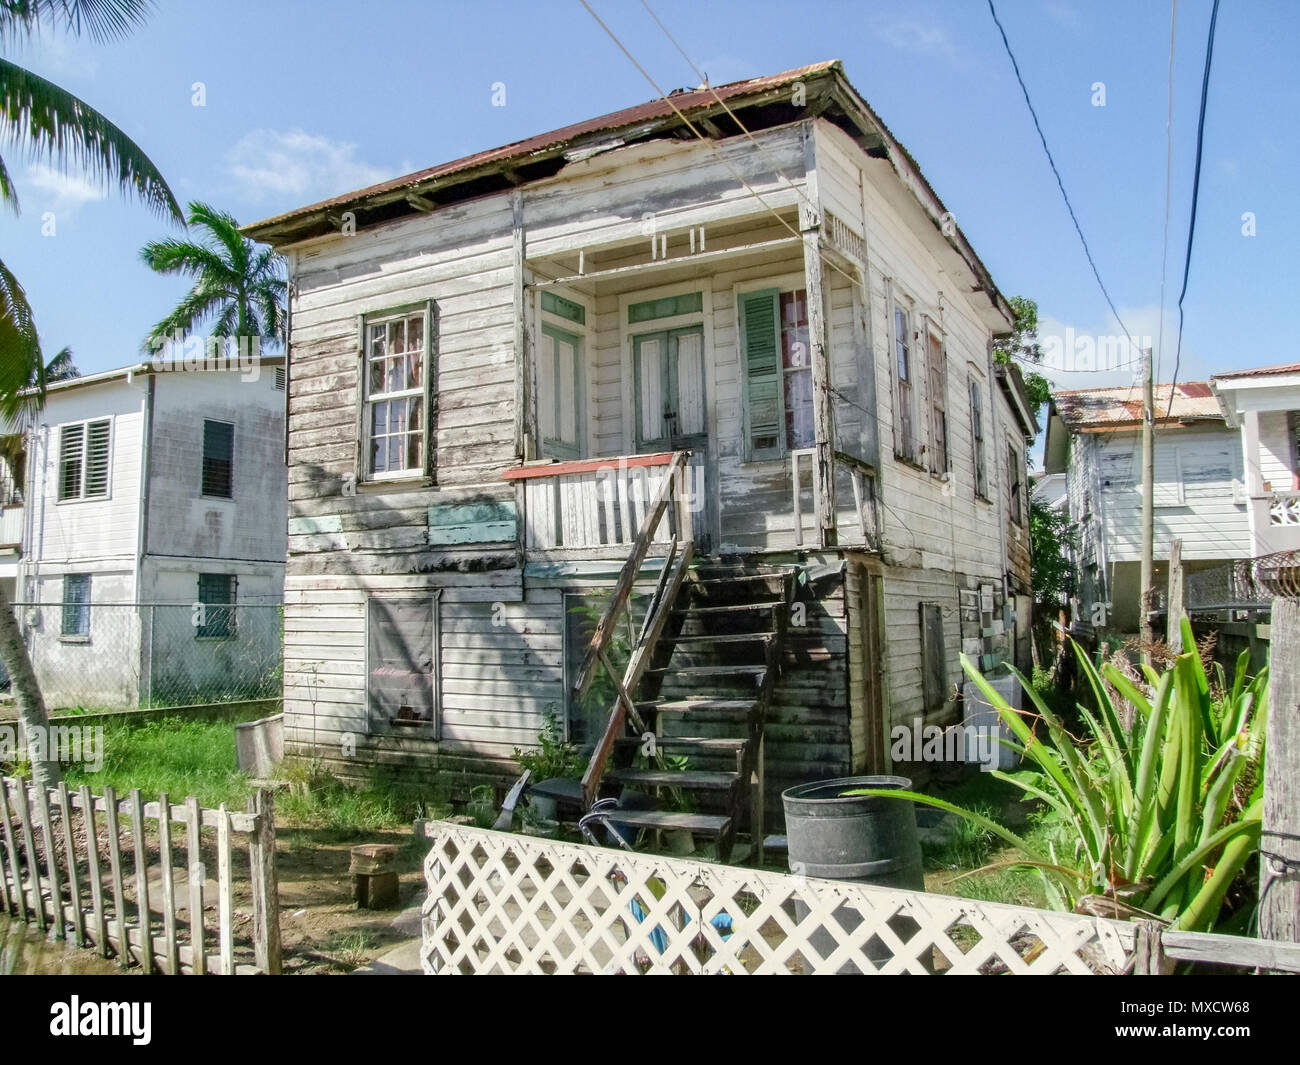 rundown wooden        house seen in Belize City, the capital of Belize in Central America - Stock Image